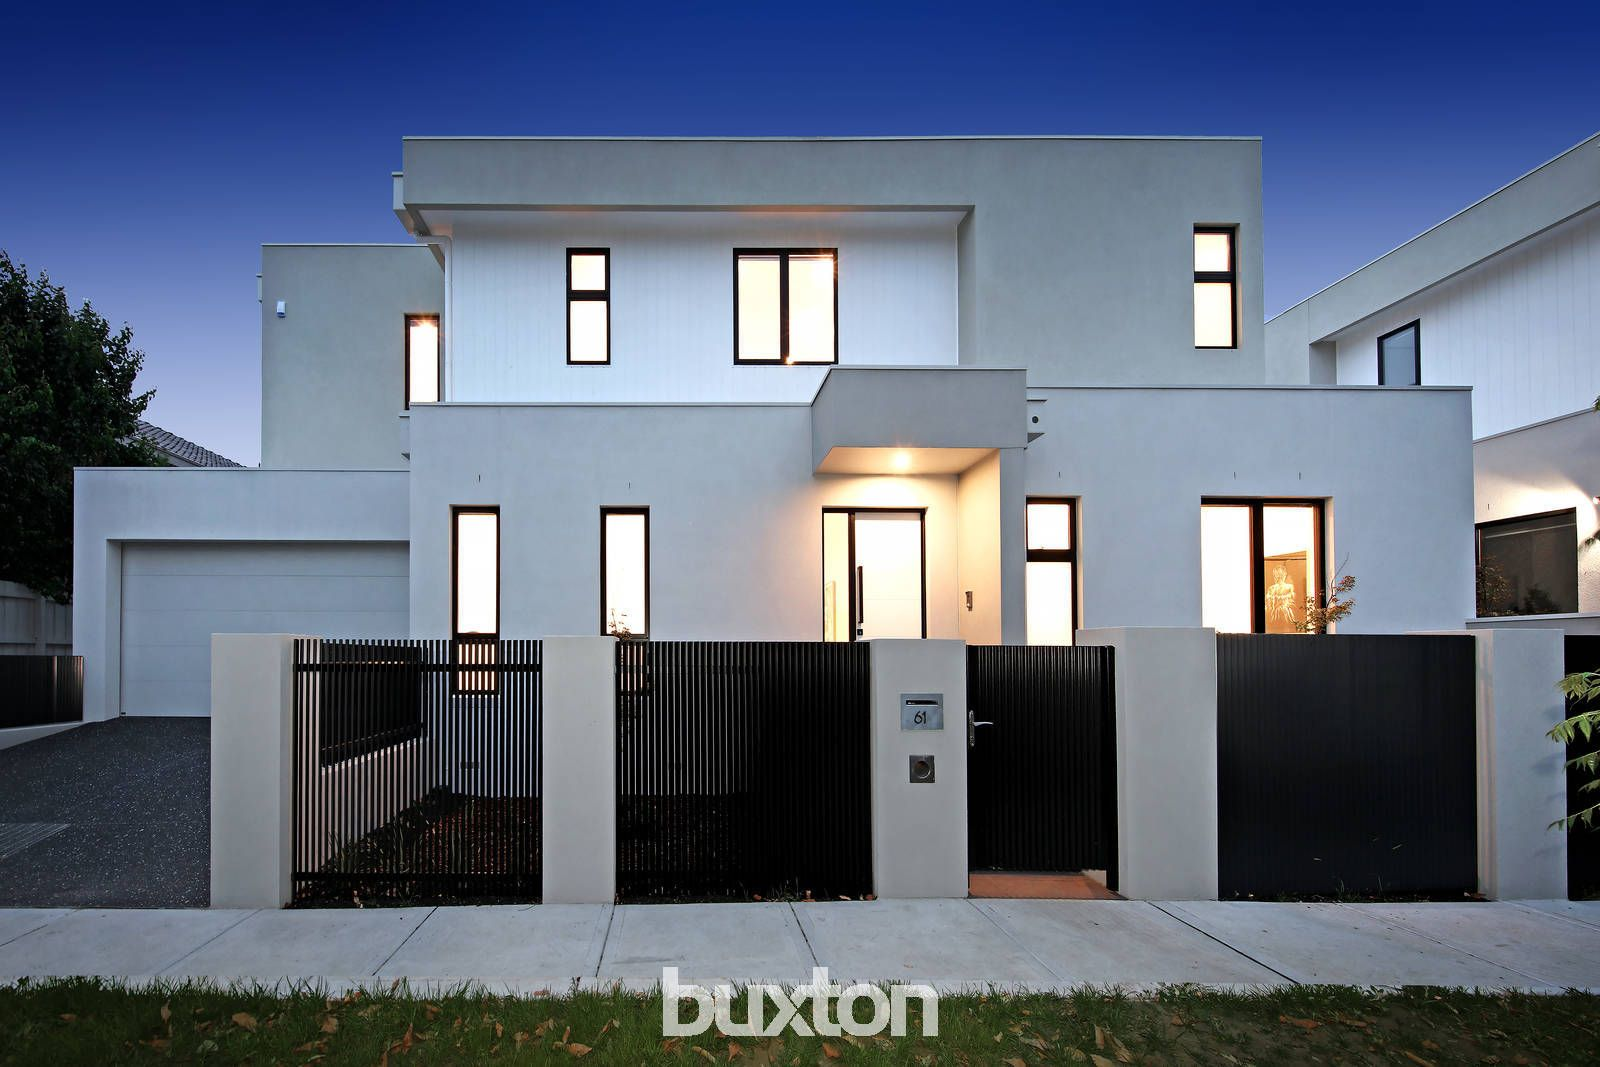 61 Almond Street, Caulfield South VIC 3162, Image 0